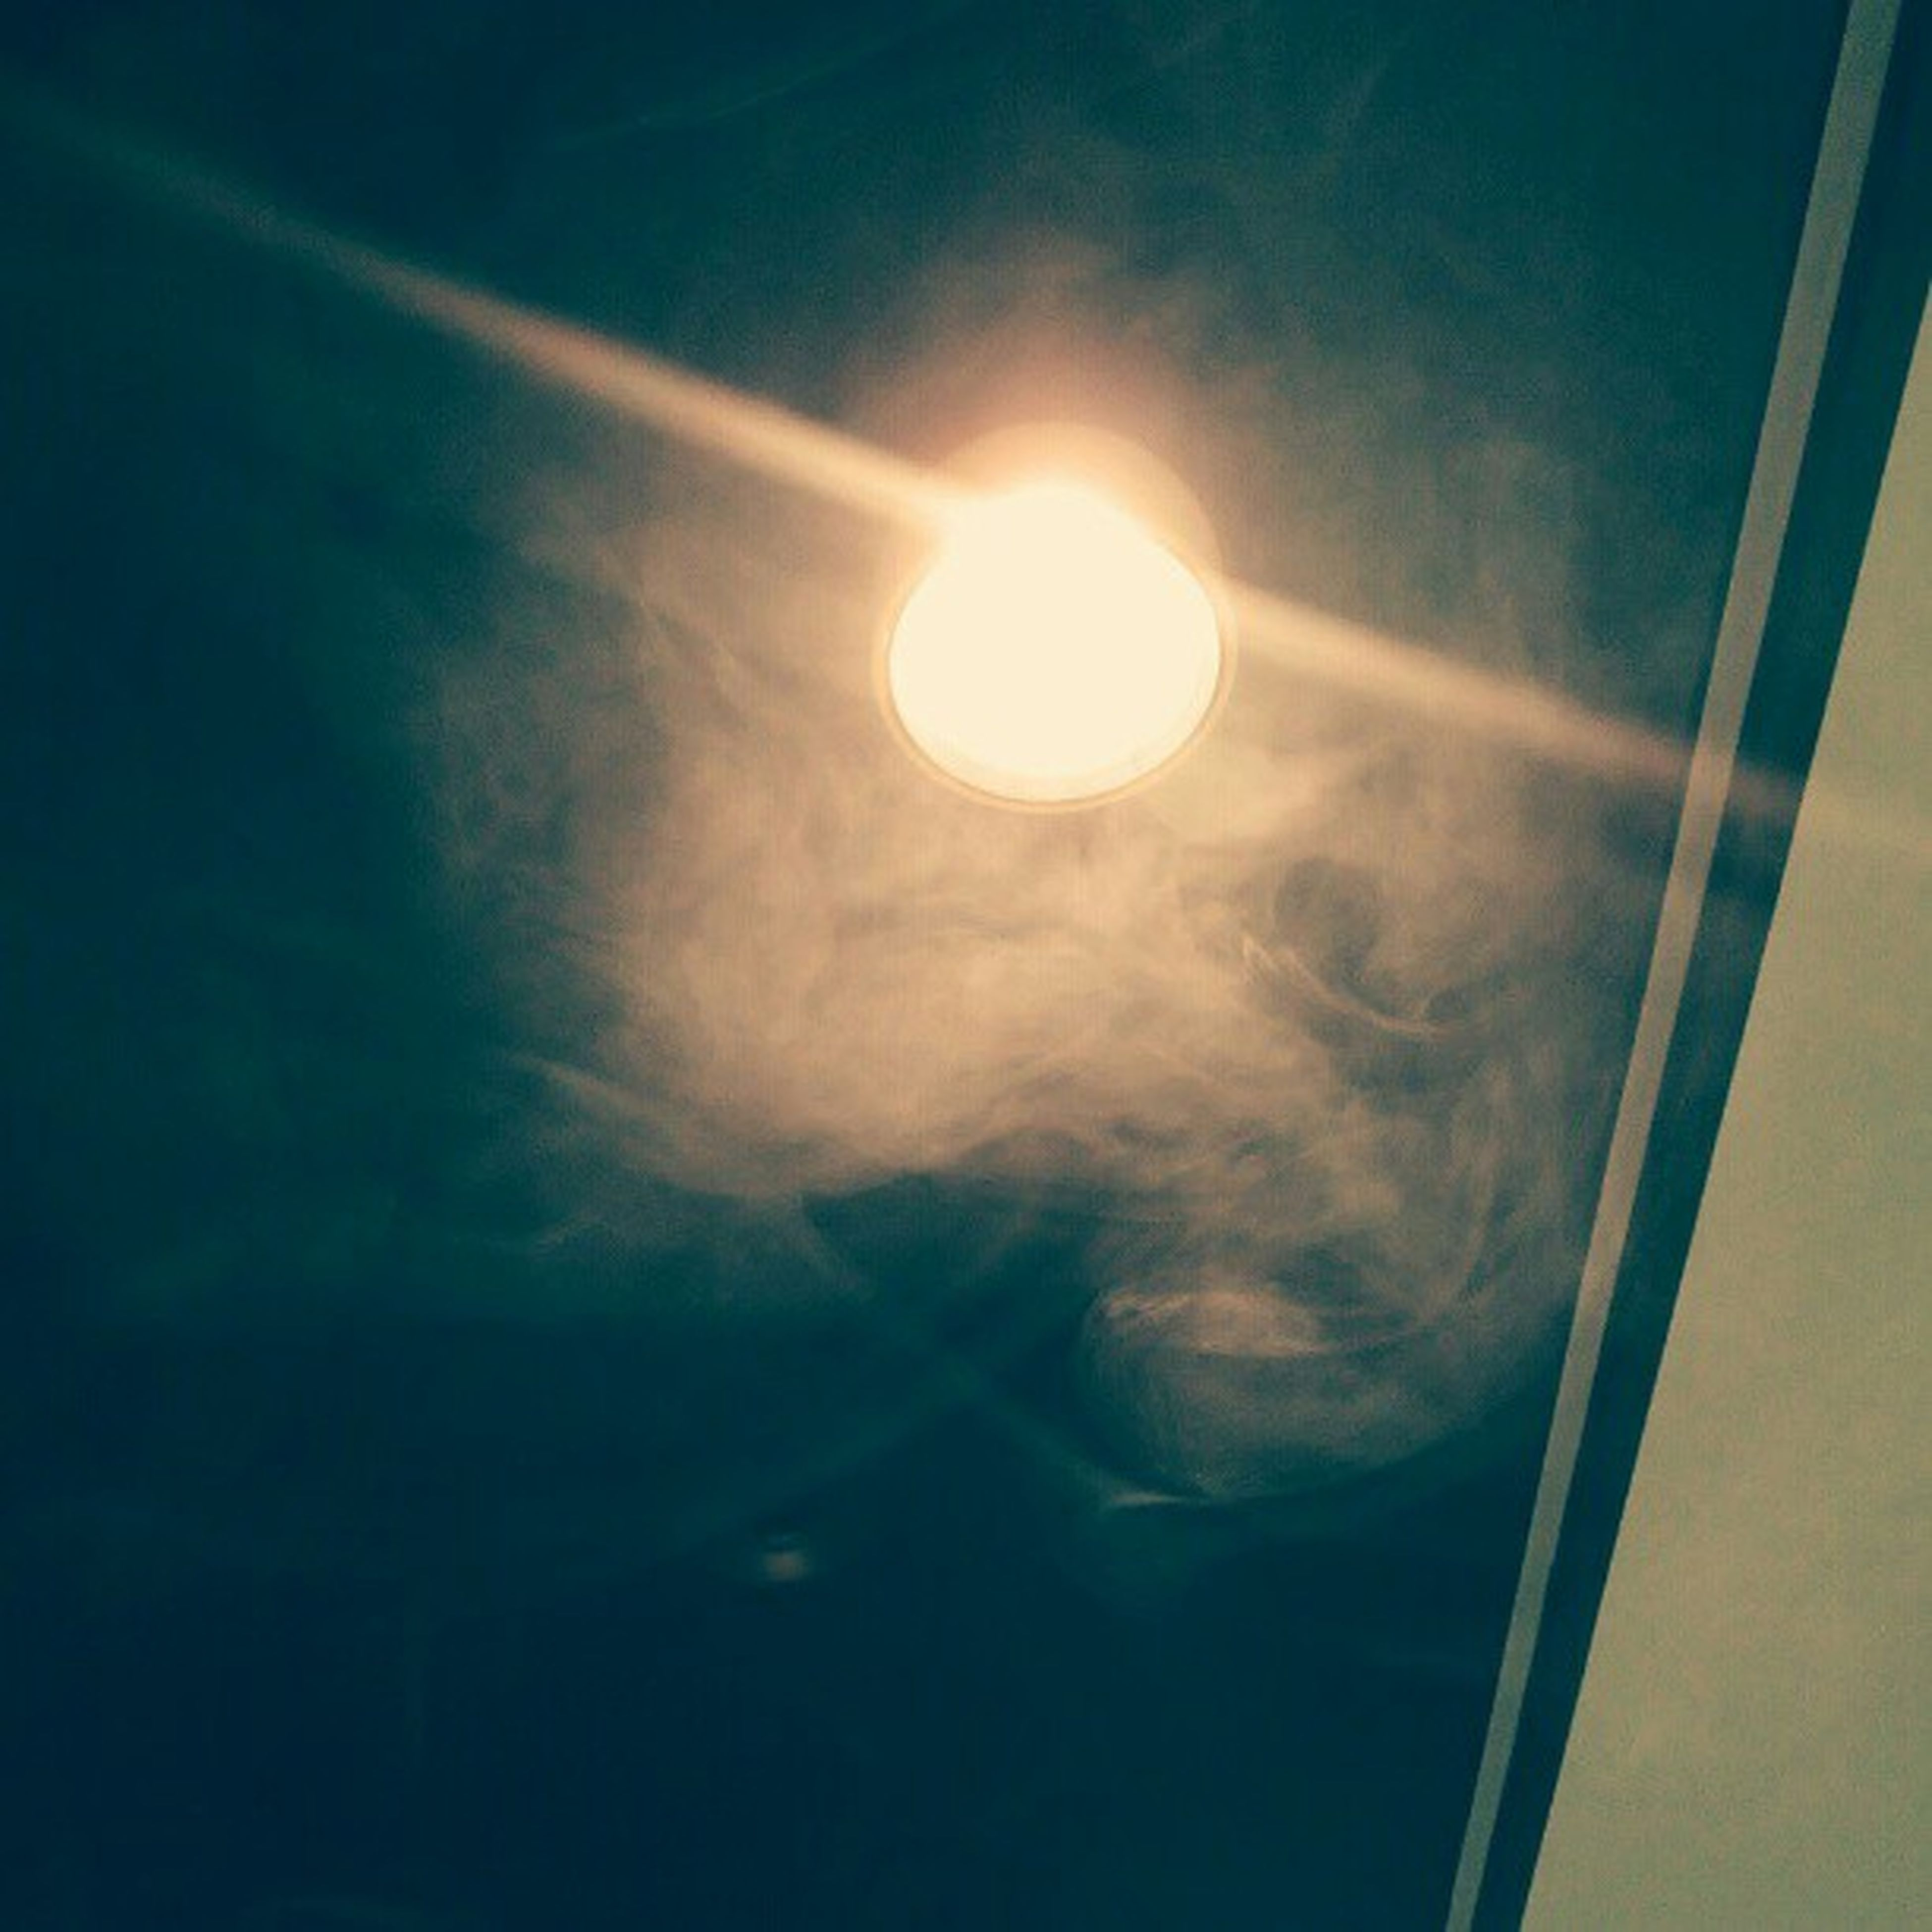 low angle view, sky, moon, window, lighting equipment, indoors, glass - material, illuminated, night, sun, cloud - sky, nature, no people, lens flare, built structure, street light, sunlight, transparent, reflection